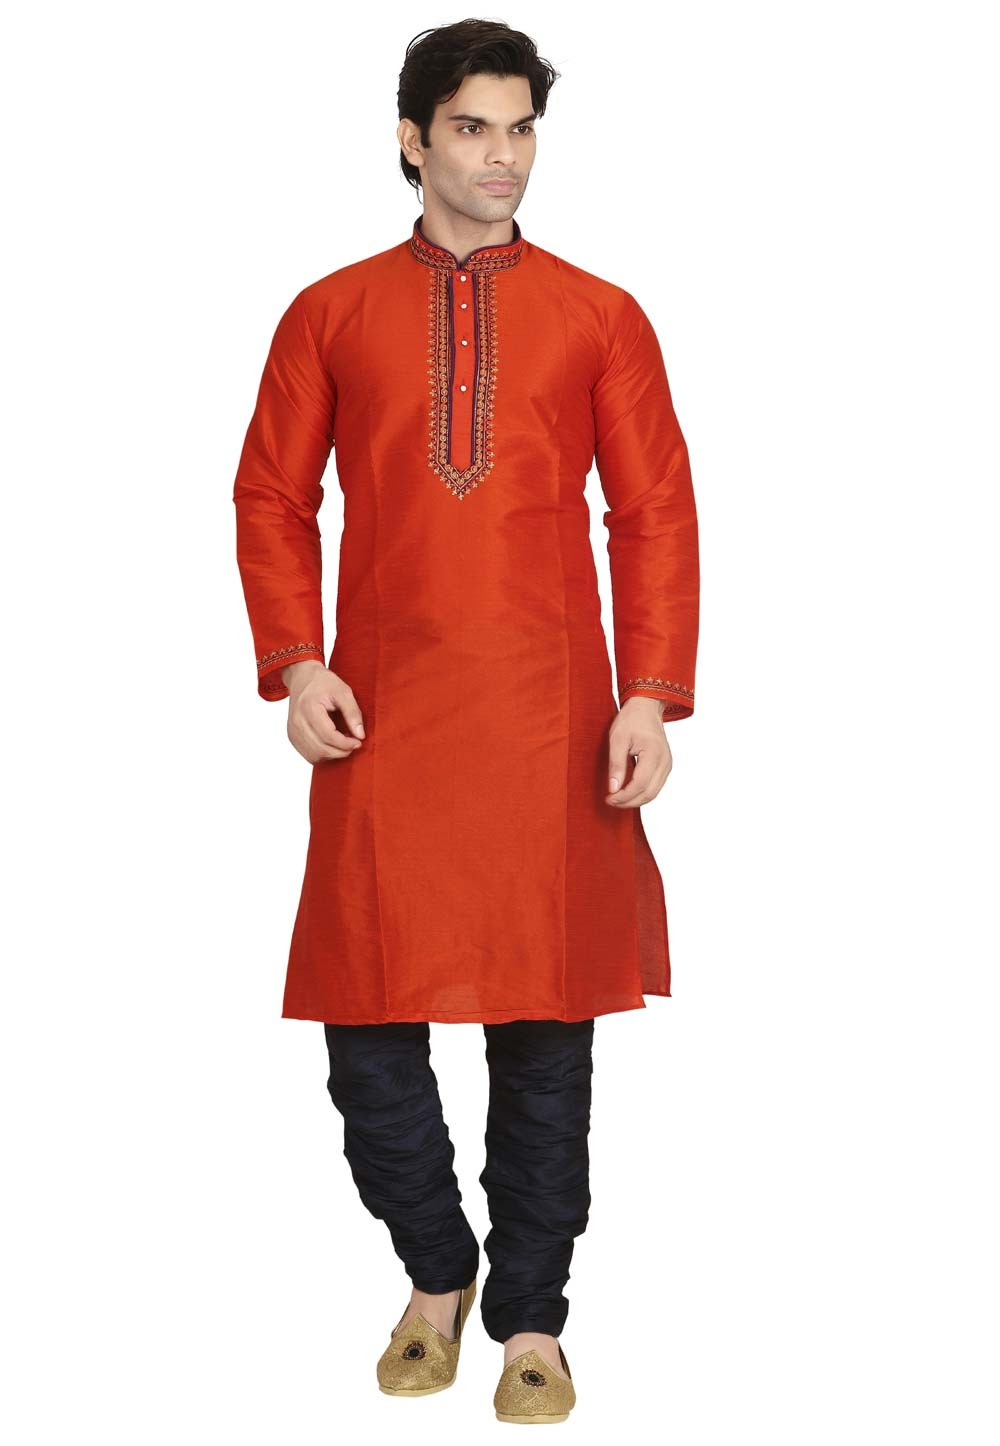 Exquisite Red Color Dupion Silk Men's Readymade Kurta